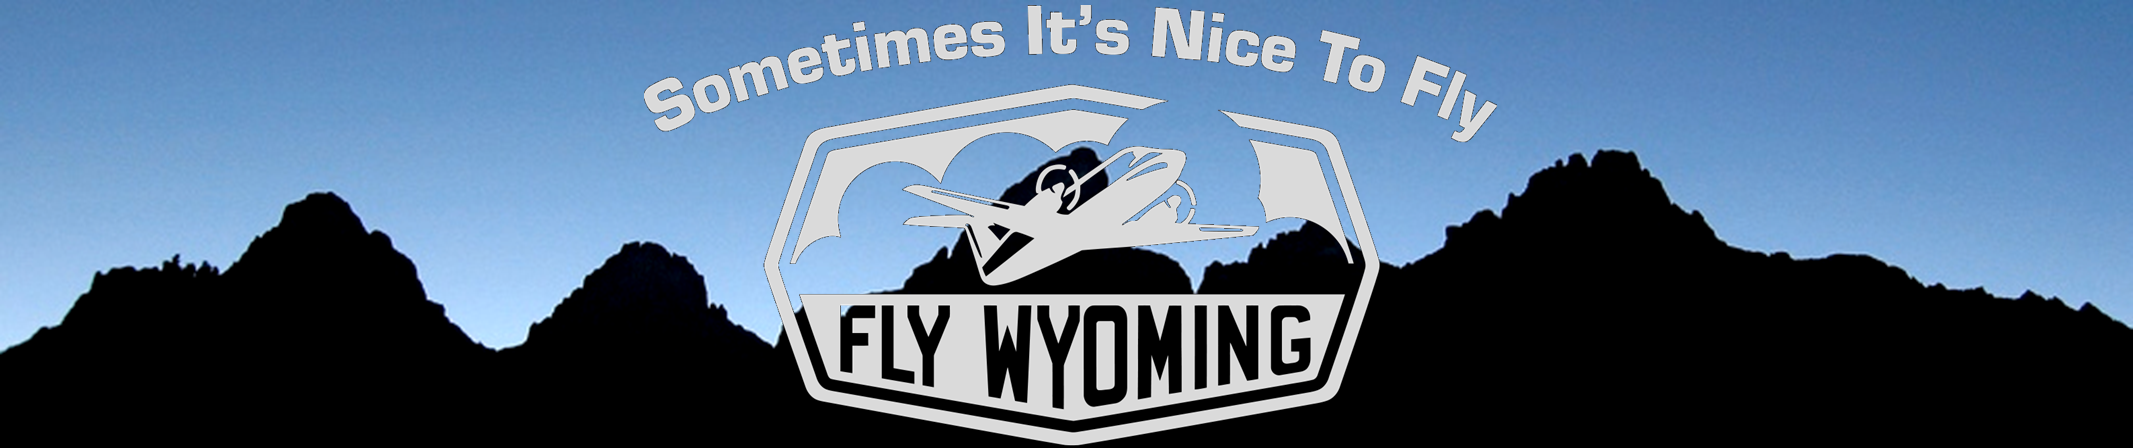 FLY_WYOMING_BANNER.png